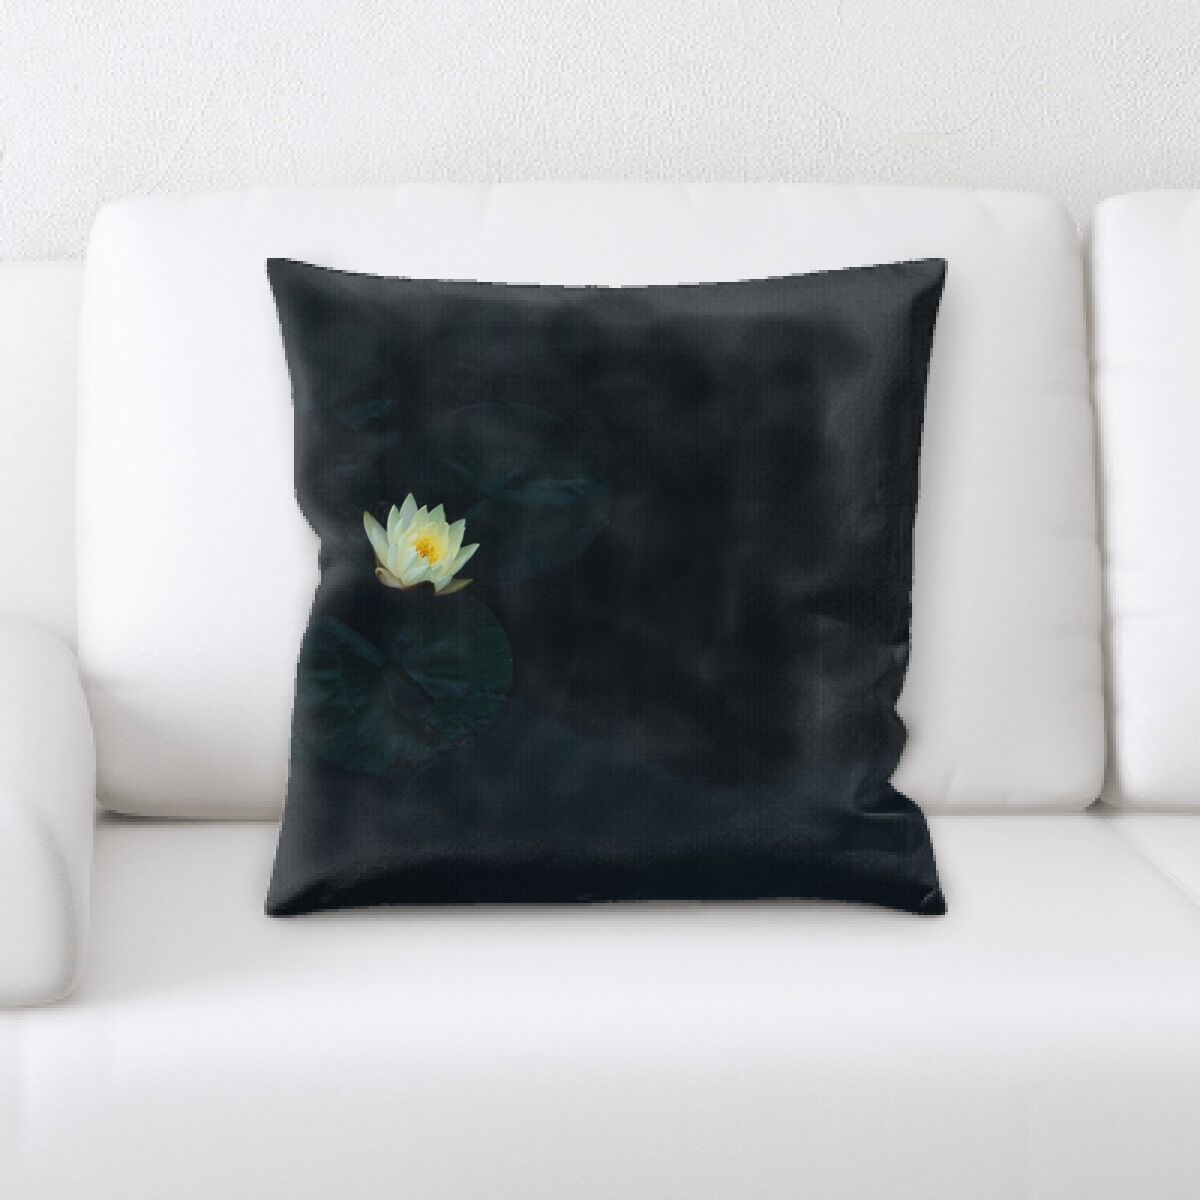 Bowen Meditation and Calming Moments (13) Throw Pillow